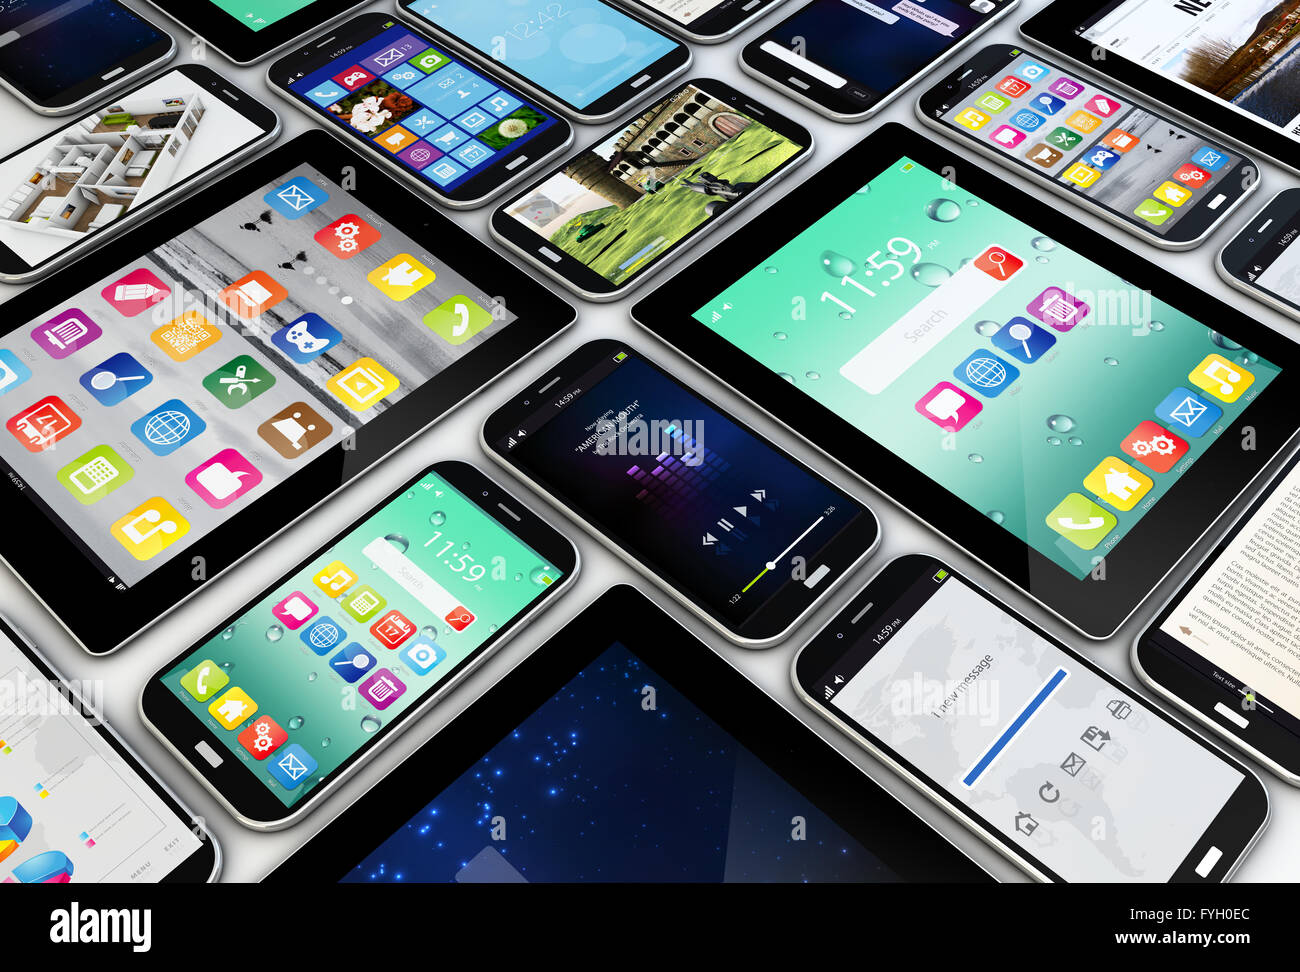 applications concept: a group of mobile devices with apps on the screens - Stock Image